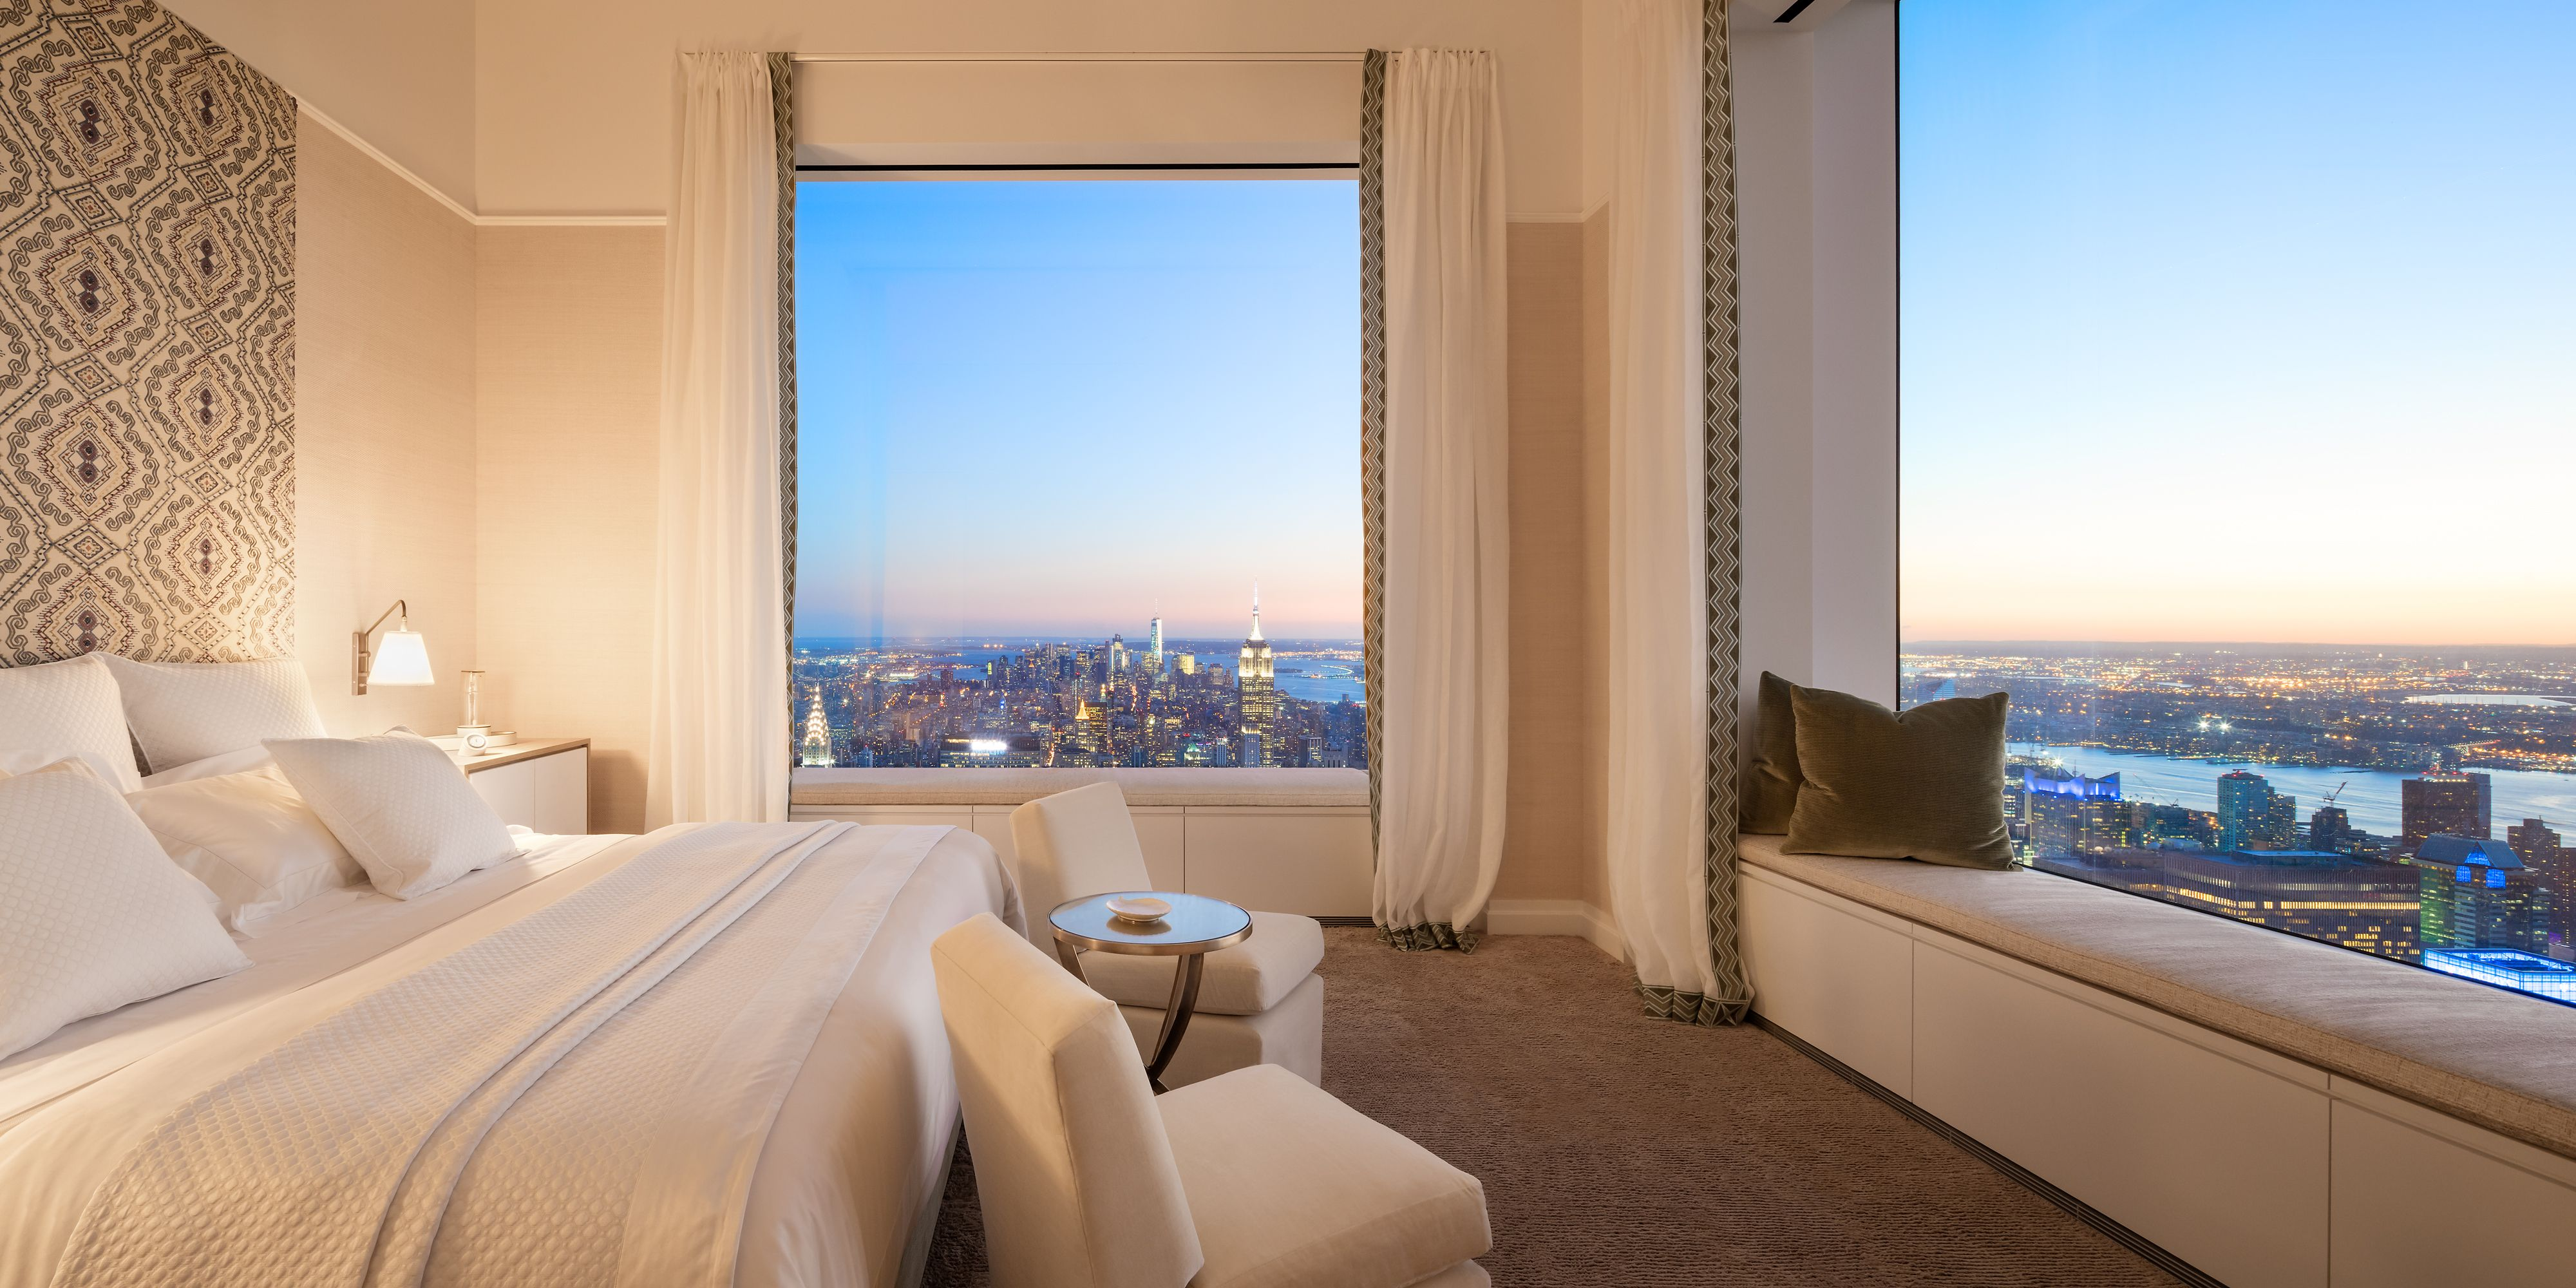 432 Park Avenue Interior Photos  432 Park Avenue Photos